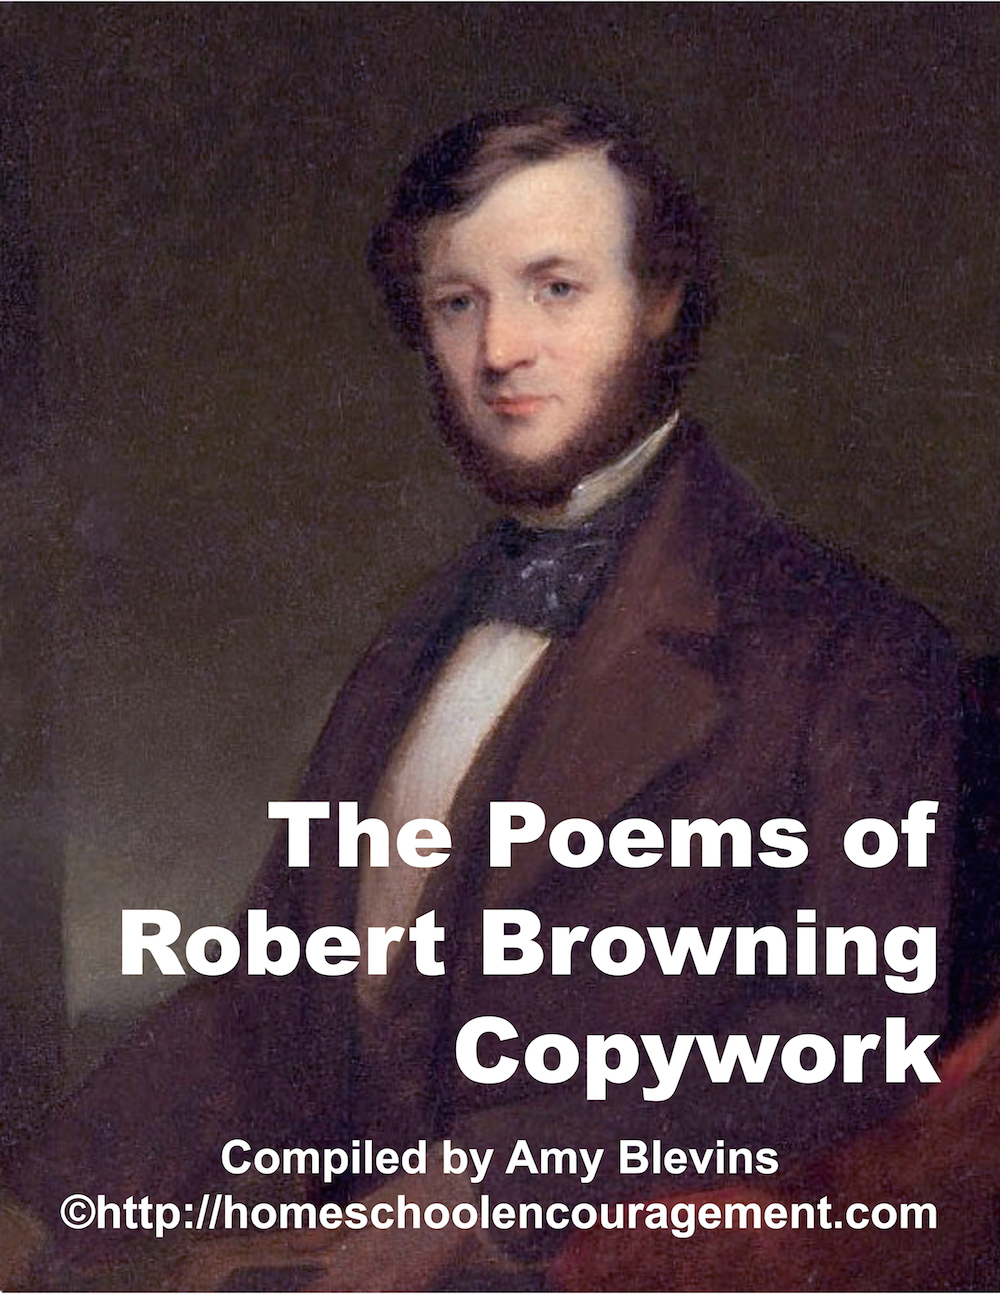 poetry of robert browning essay Robert browning the need essay sample on explore the concepts of success and failure in a grammarian's funeral and one other poem by robert browning.